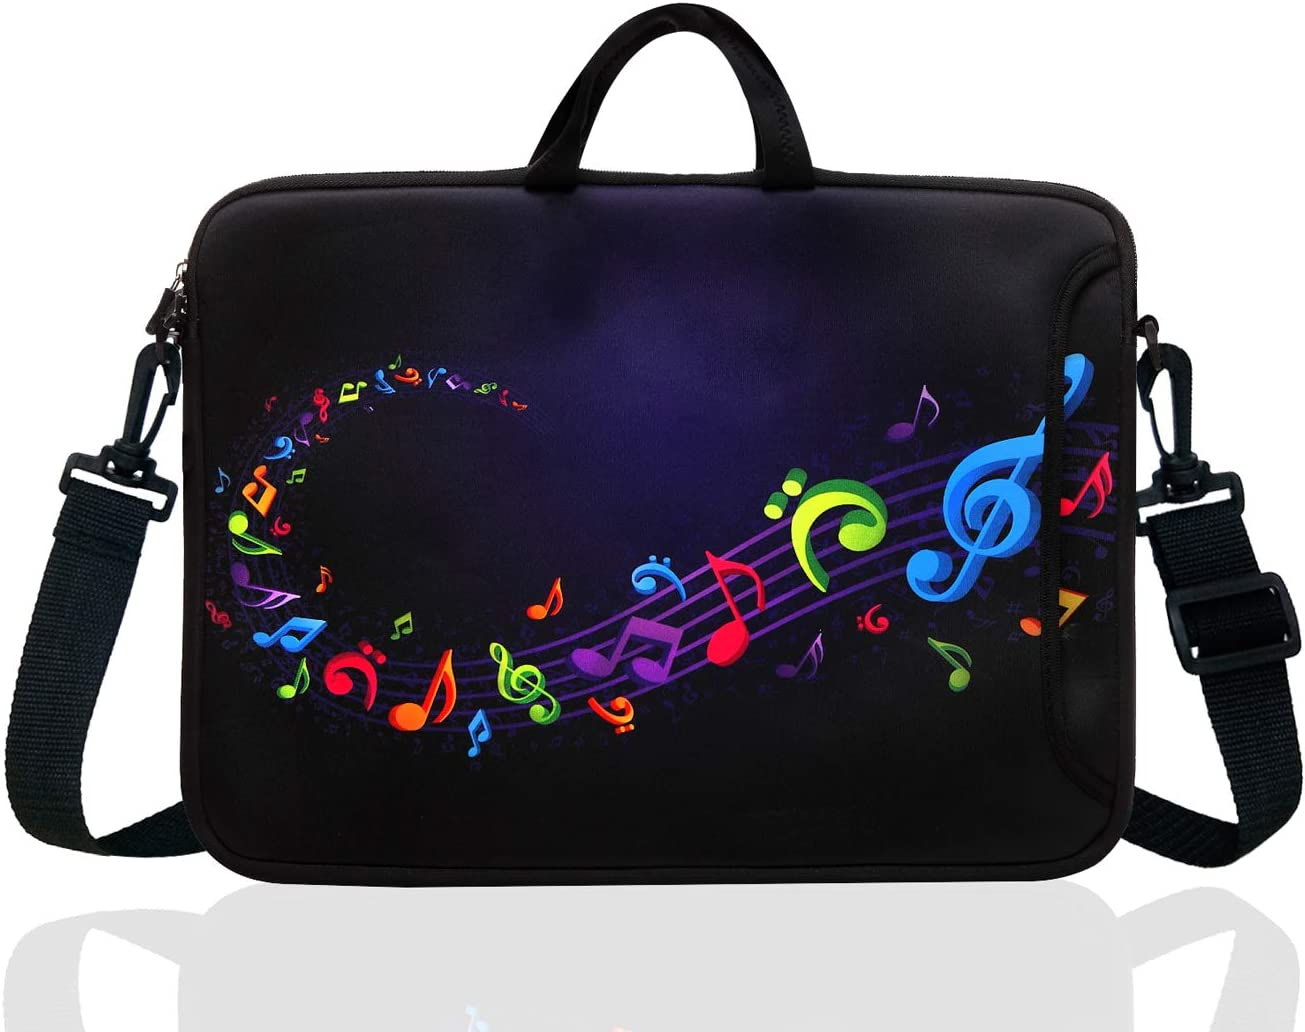 "15-Inch to 15.6-Inch Neoprene Laptop Shoulder Messenger Bag Case Sleeve For 14 14.1 15 15.6"" Inch Acer/Asus/Dell/Lenovo/Thinkpad/HP/Macbook Pro/Air (Musical Note)"